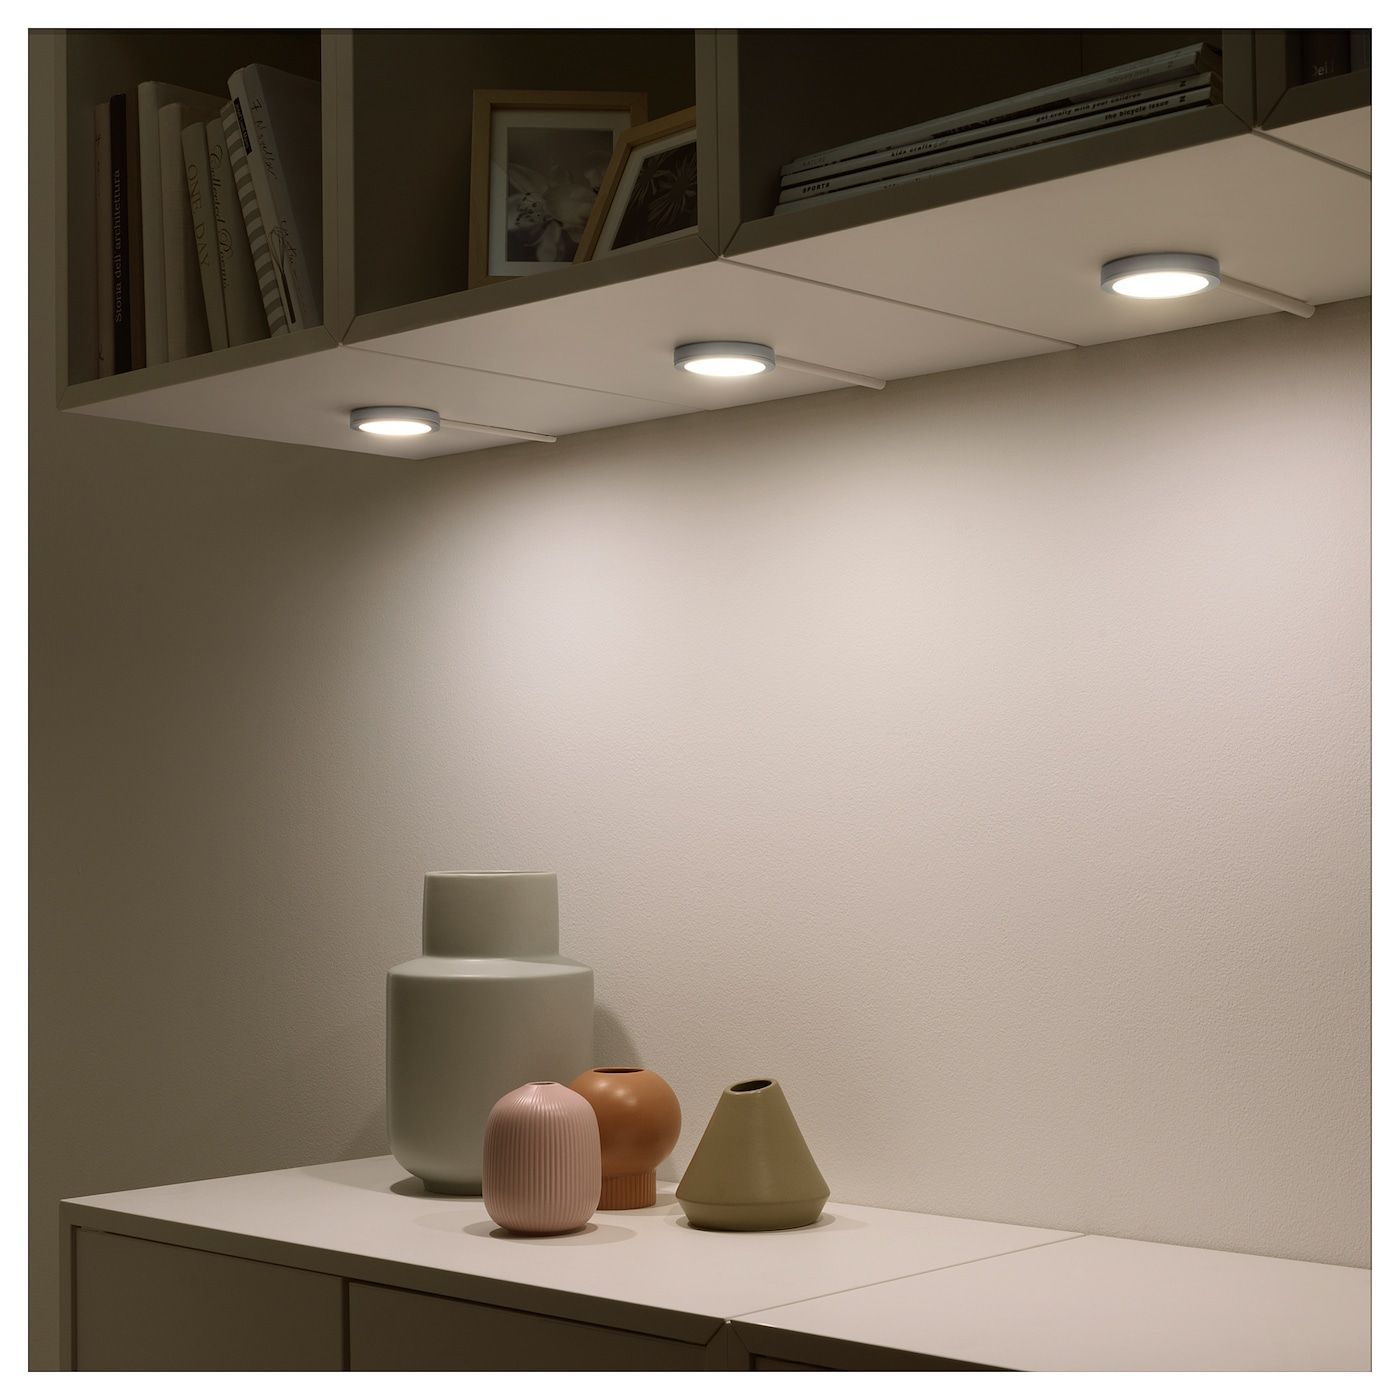 Vaxmyra Spot Led Aluminiumfarben 6 8 Cm Ikea Österreich Led Spotlight Kitchen Spotlights Bookcase Lighting